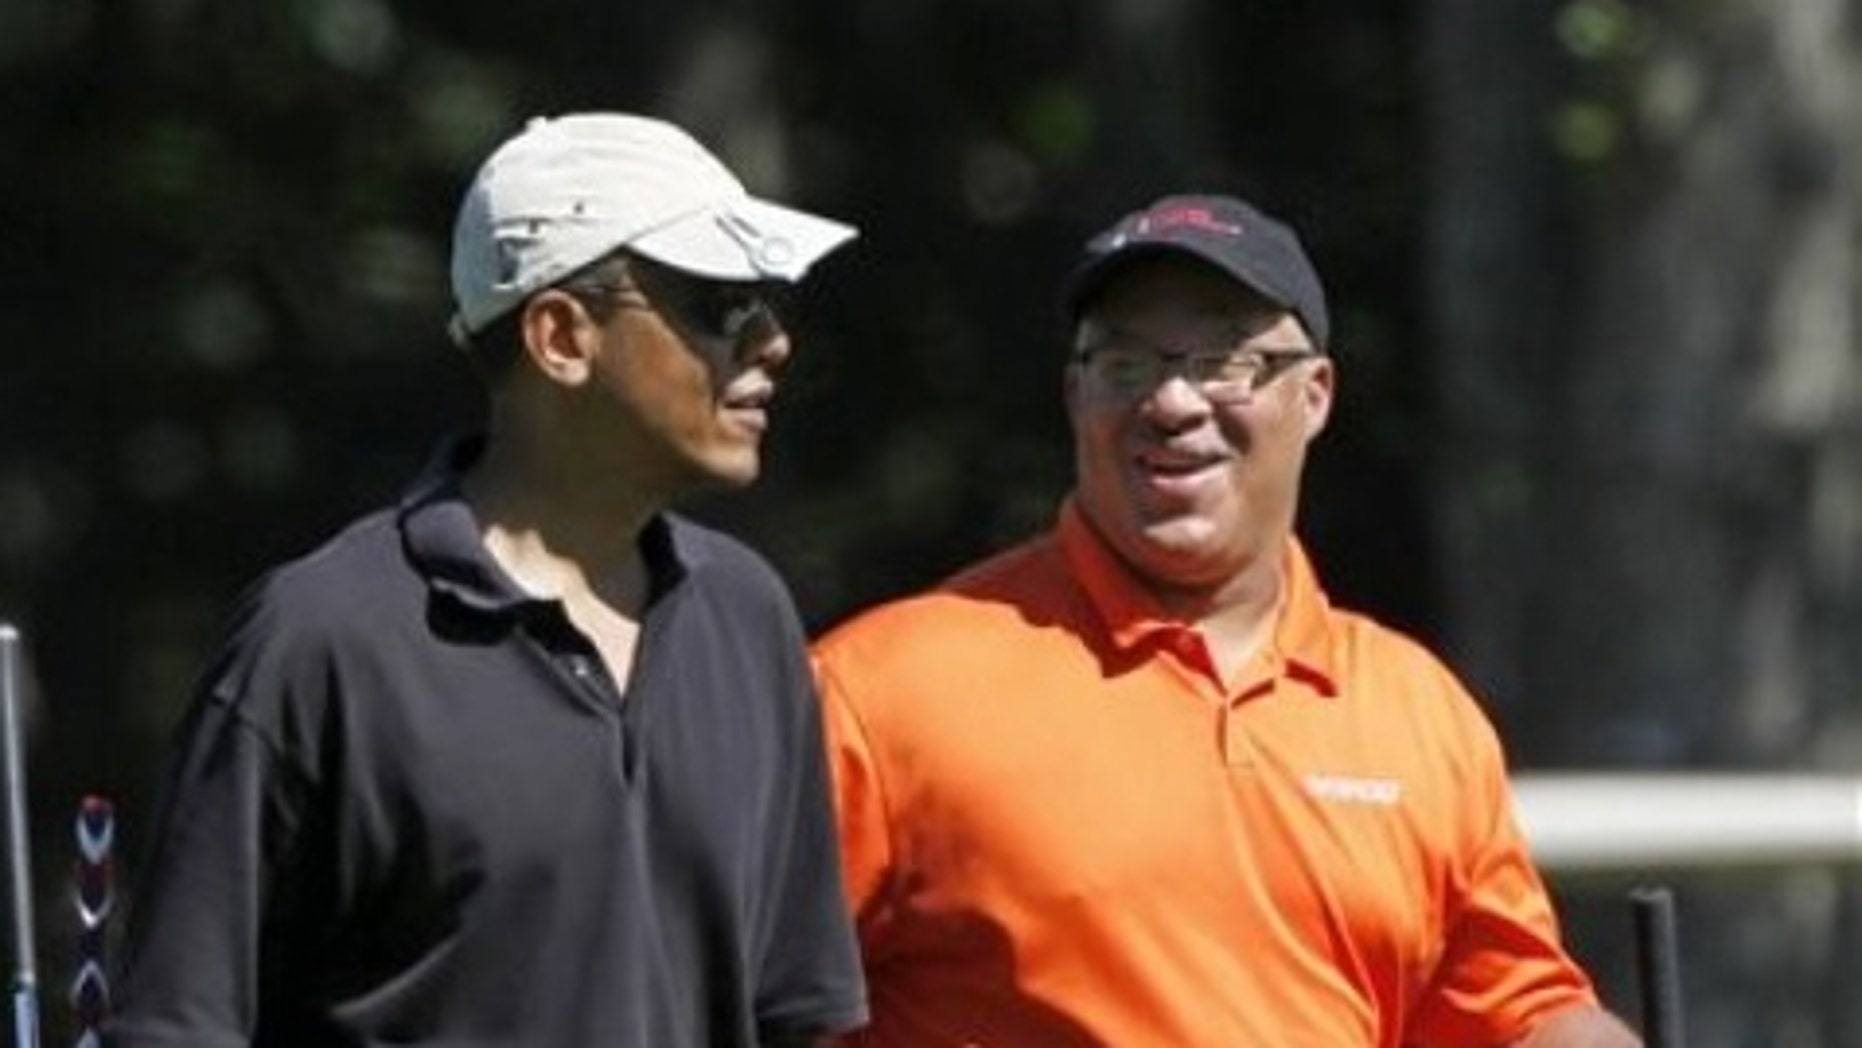 File: Aug. 23, 2011: President Barack Obama plays golf with Dr. Eric Whitaker on the island of Martha's Vineyard, in Massachusetts.